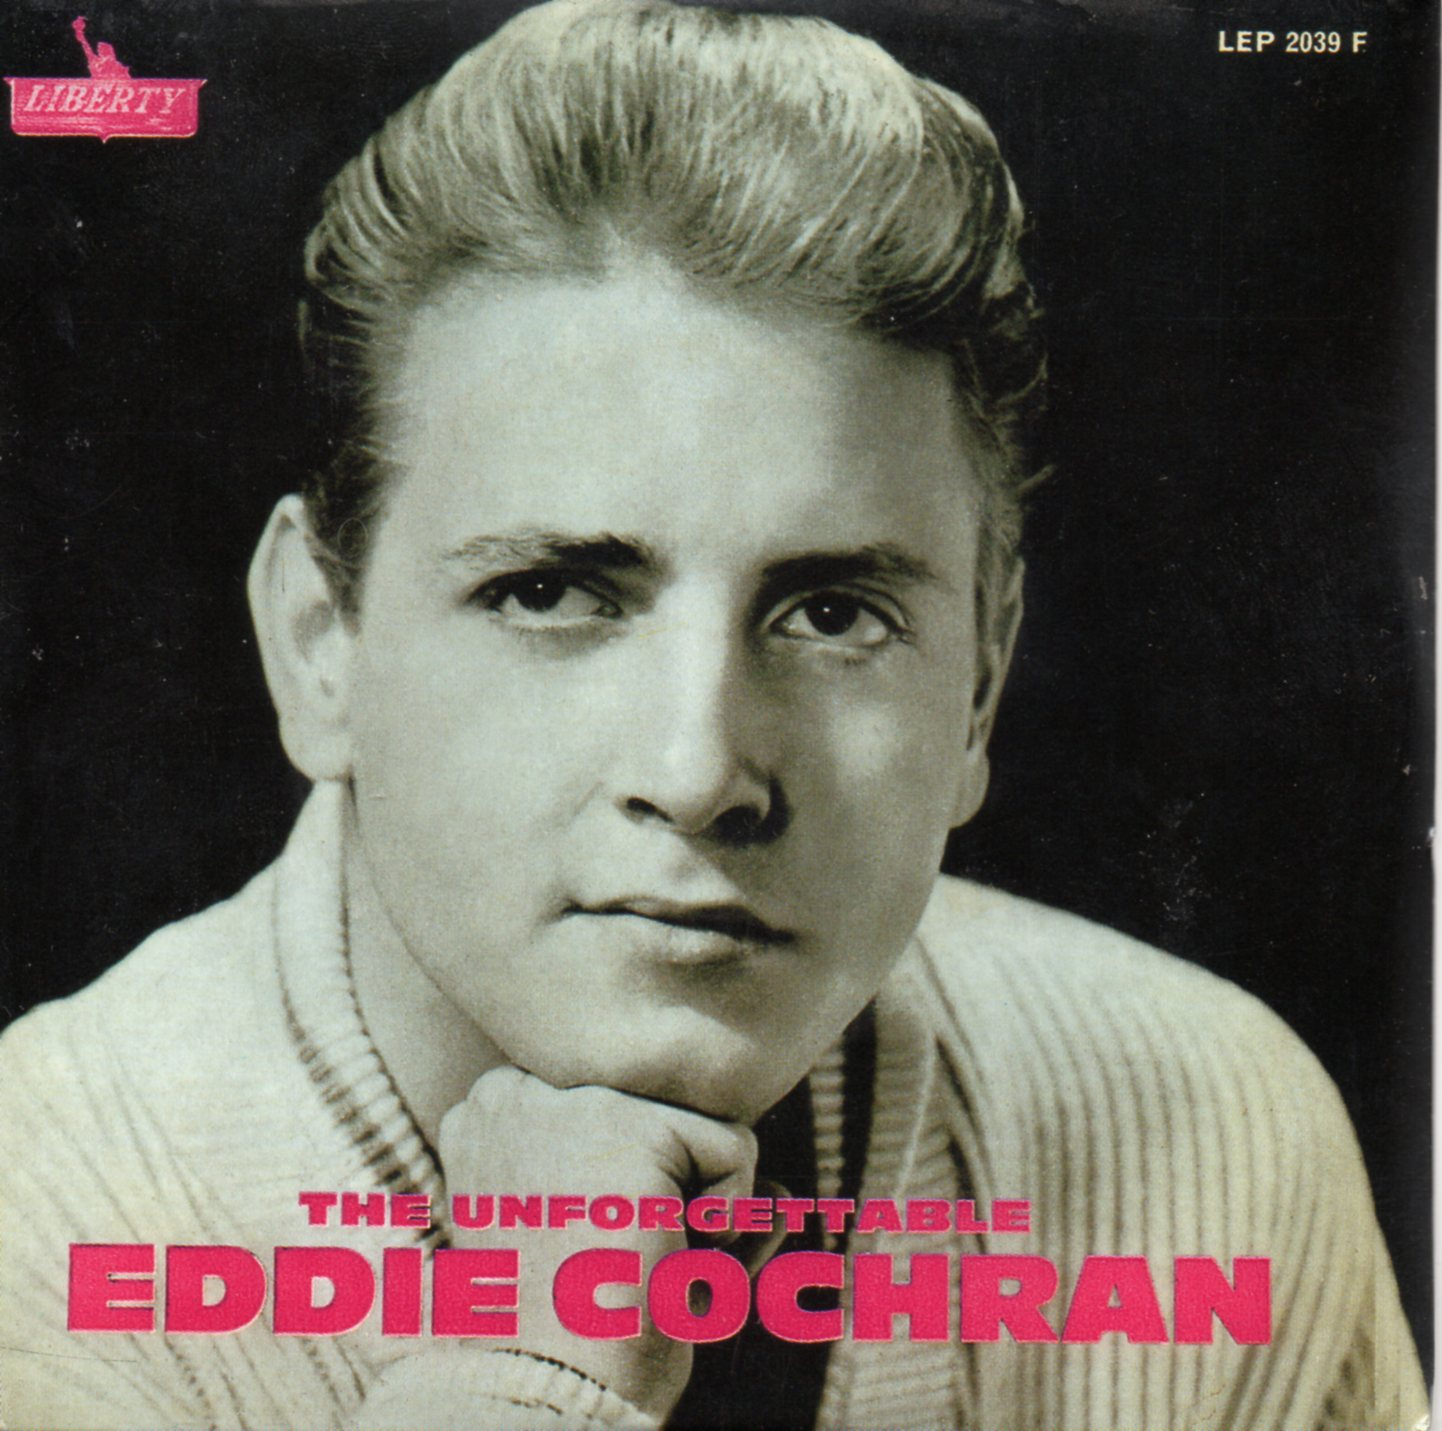 EDDIE COCHRAN - The unforgettable 4-track CARD SLEEVE - CD single